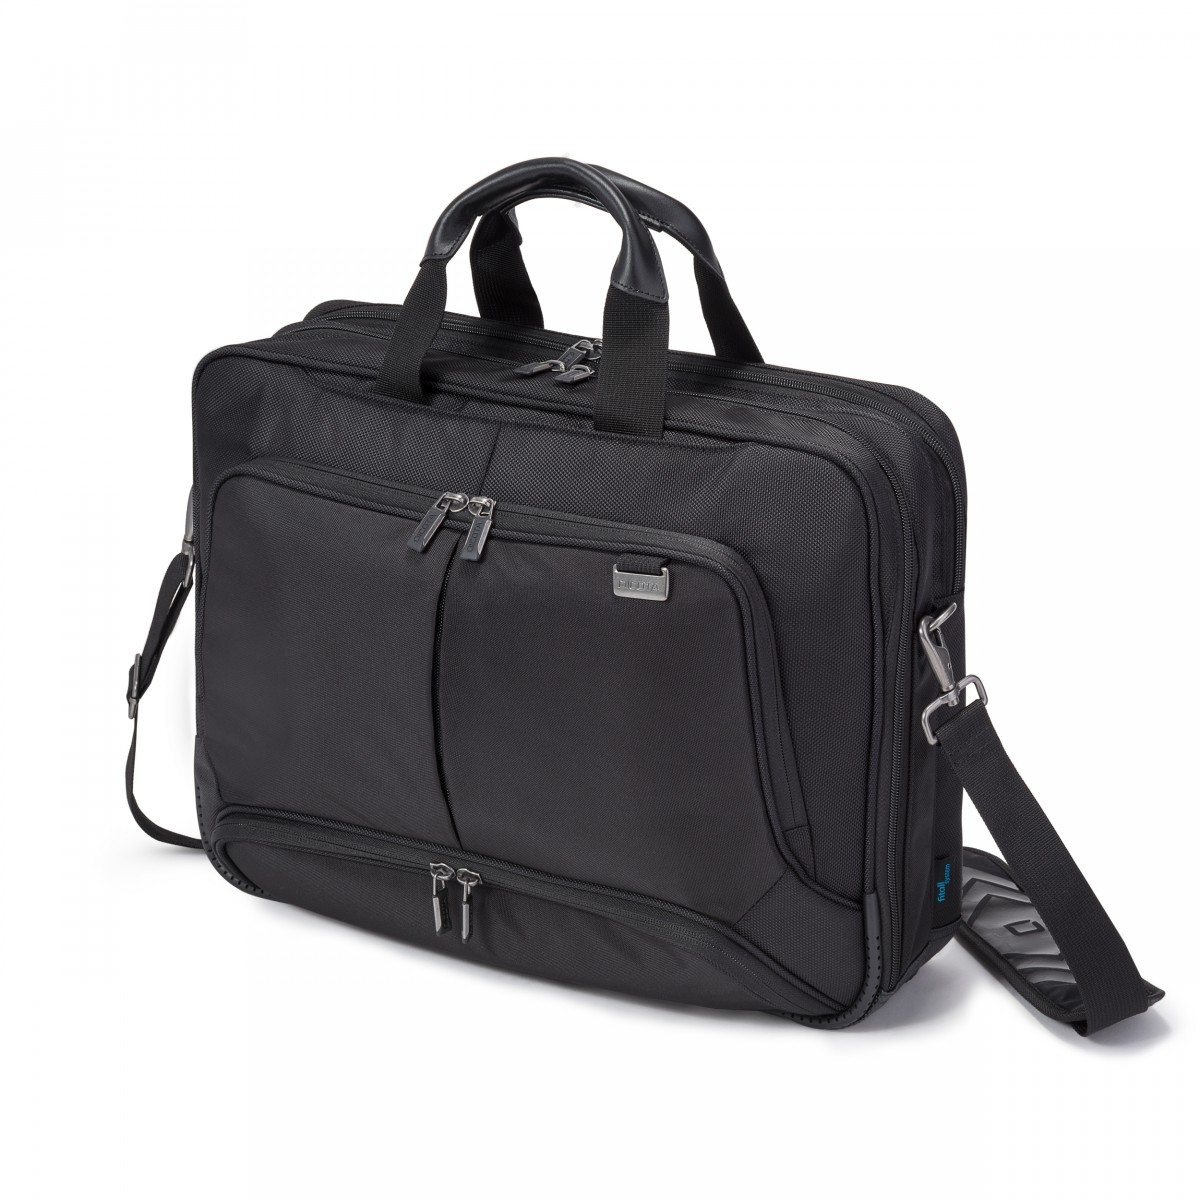 geanta notebook D30842 Top Traveller PRO 12-14.1 inch